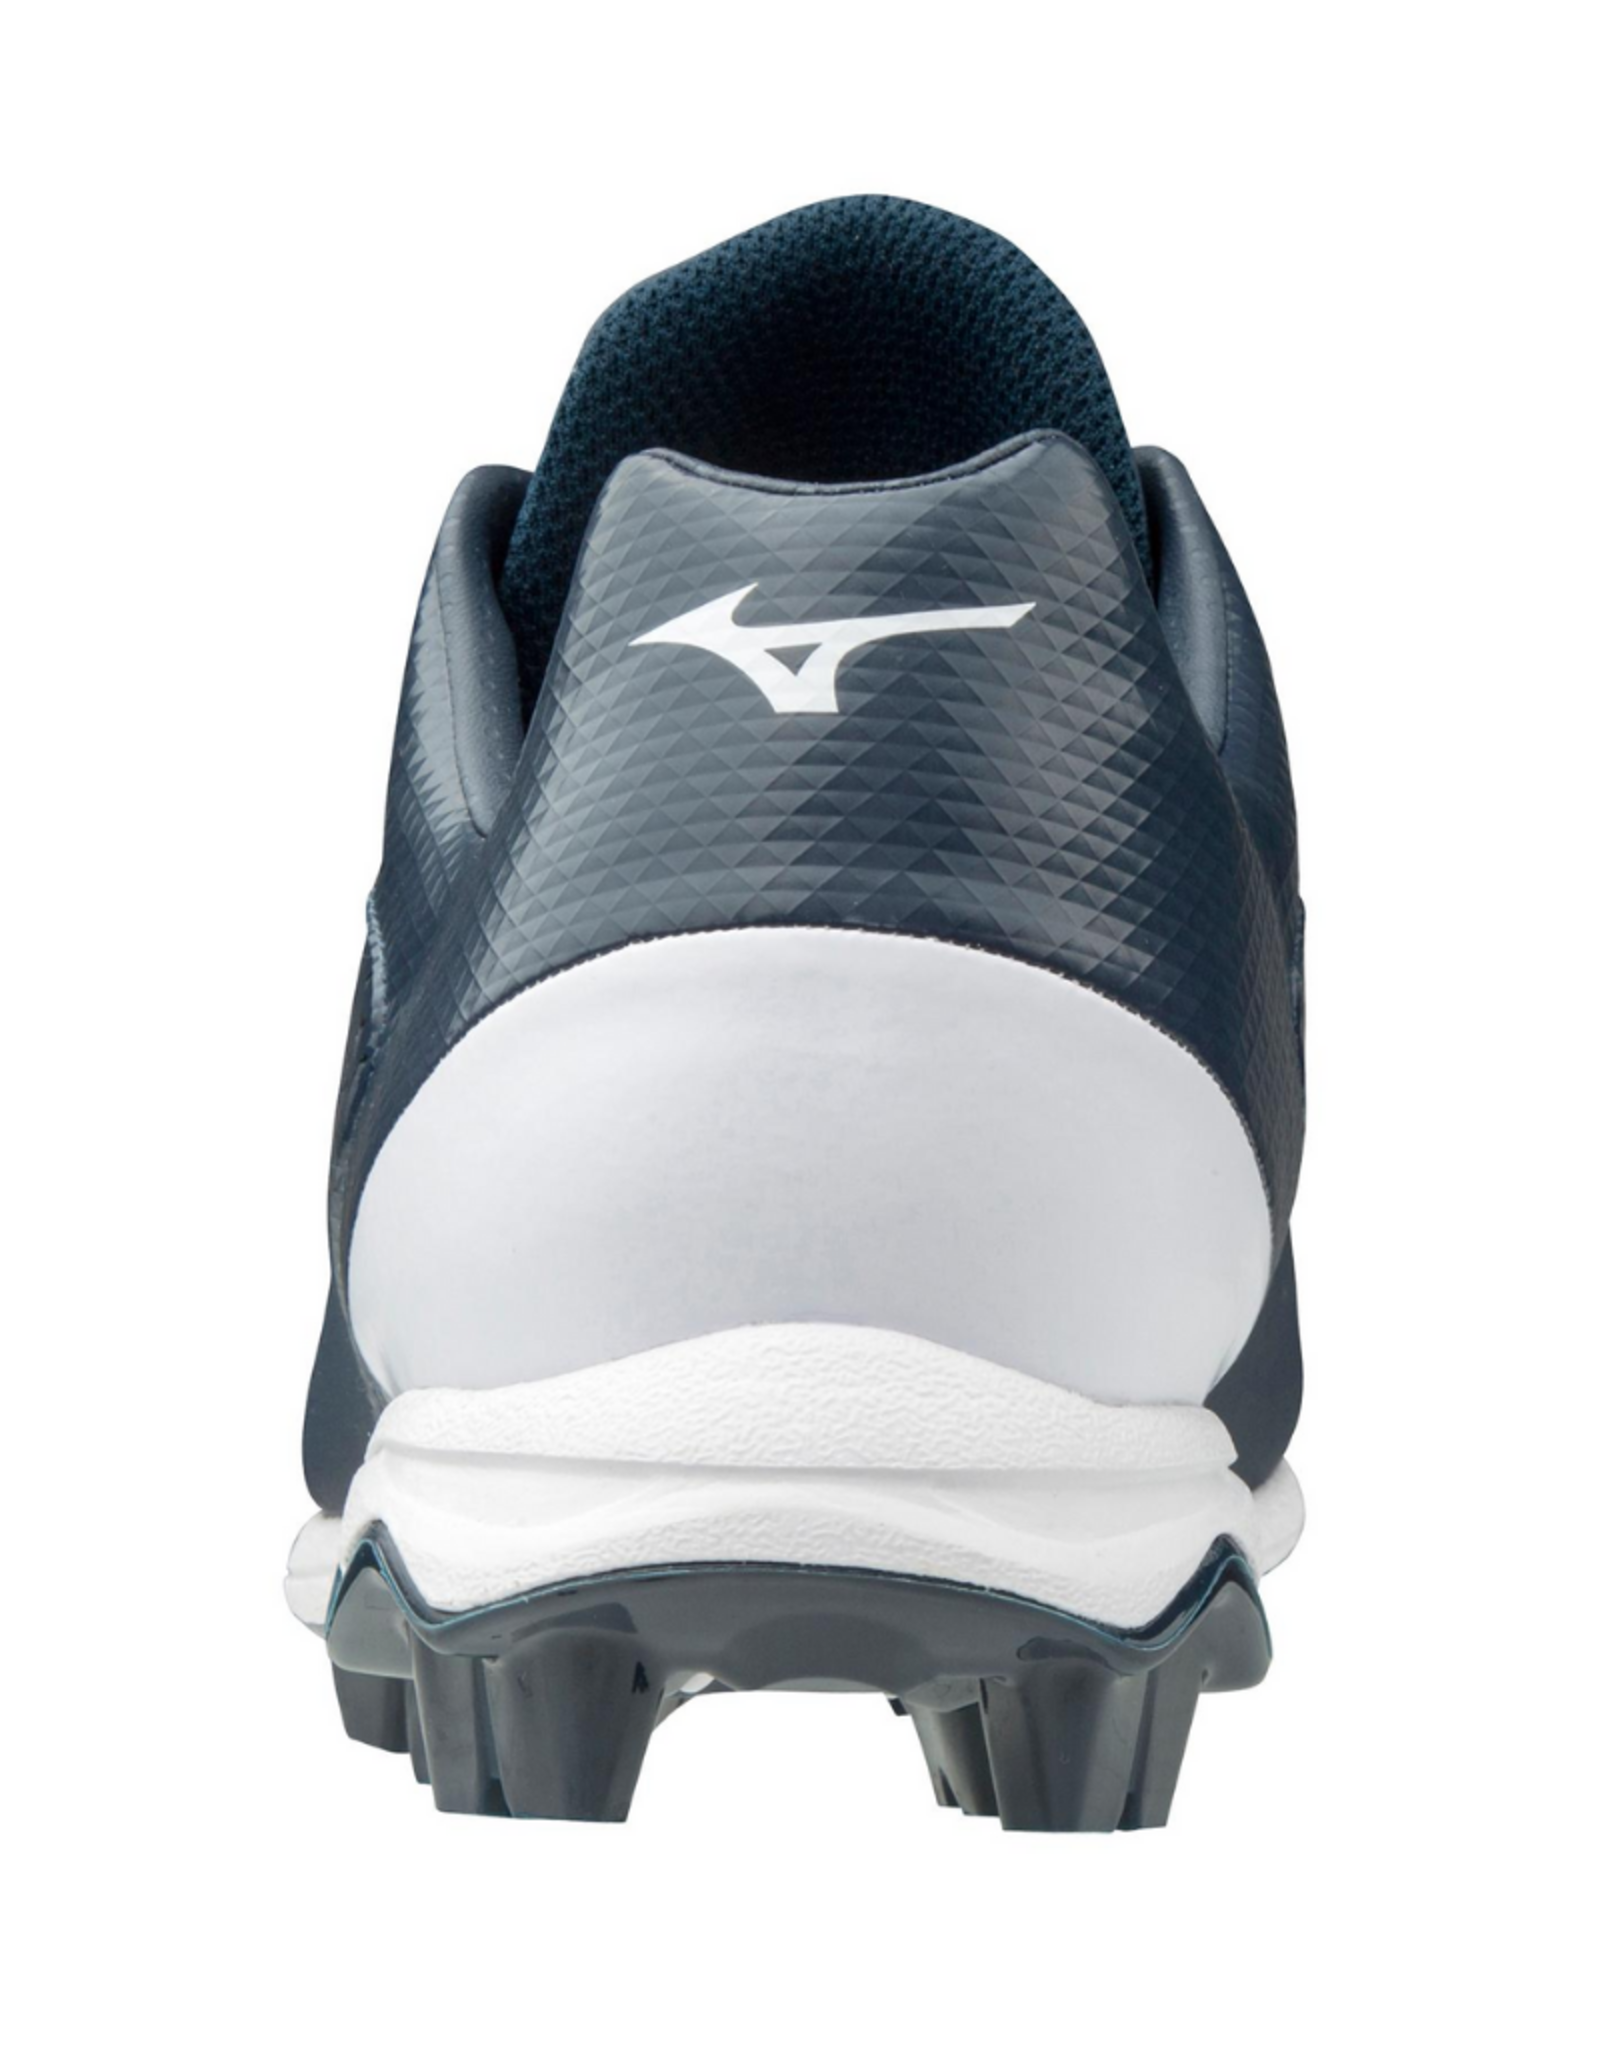 Mizuno Wave Select 9 Low Men's Baseball Cleat Navy/White